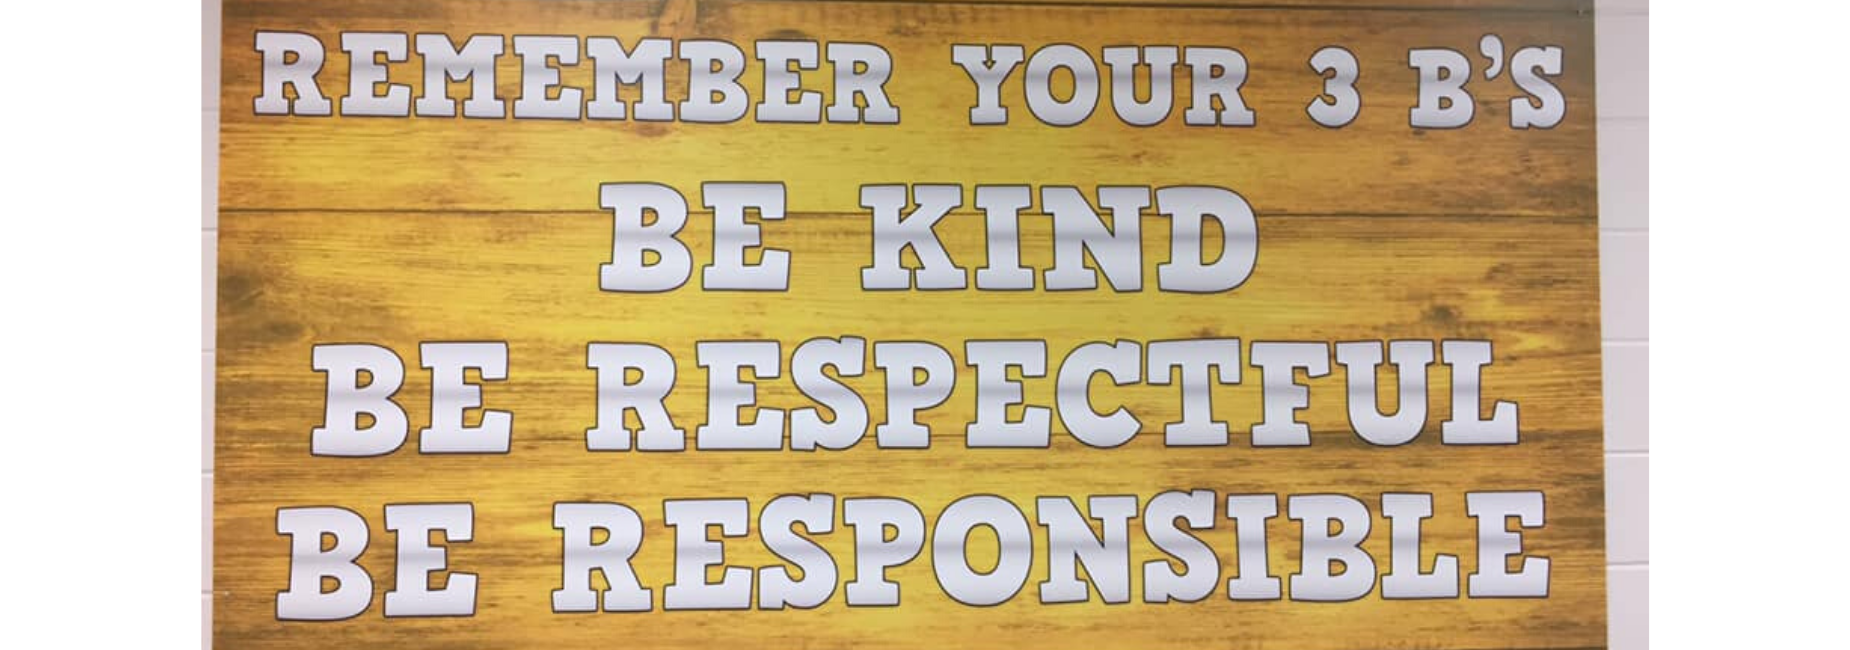 be kind be respectful be responsible